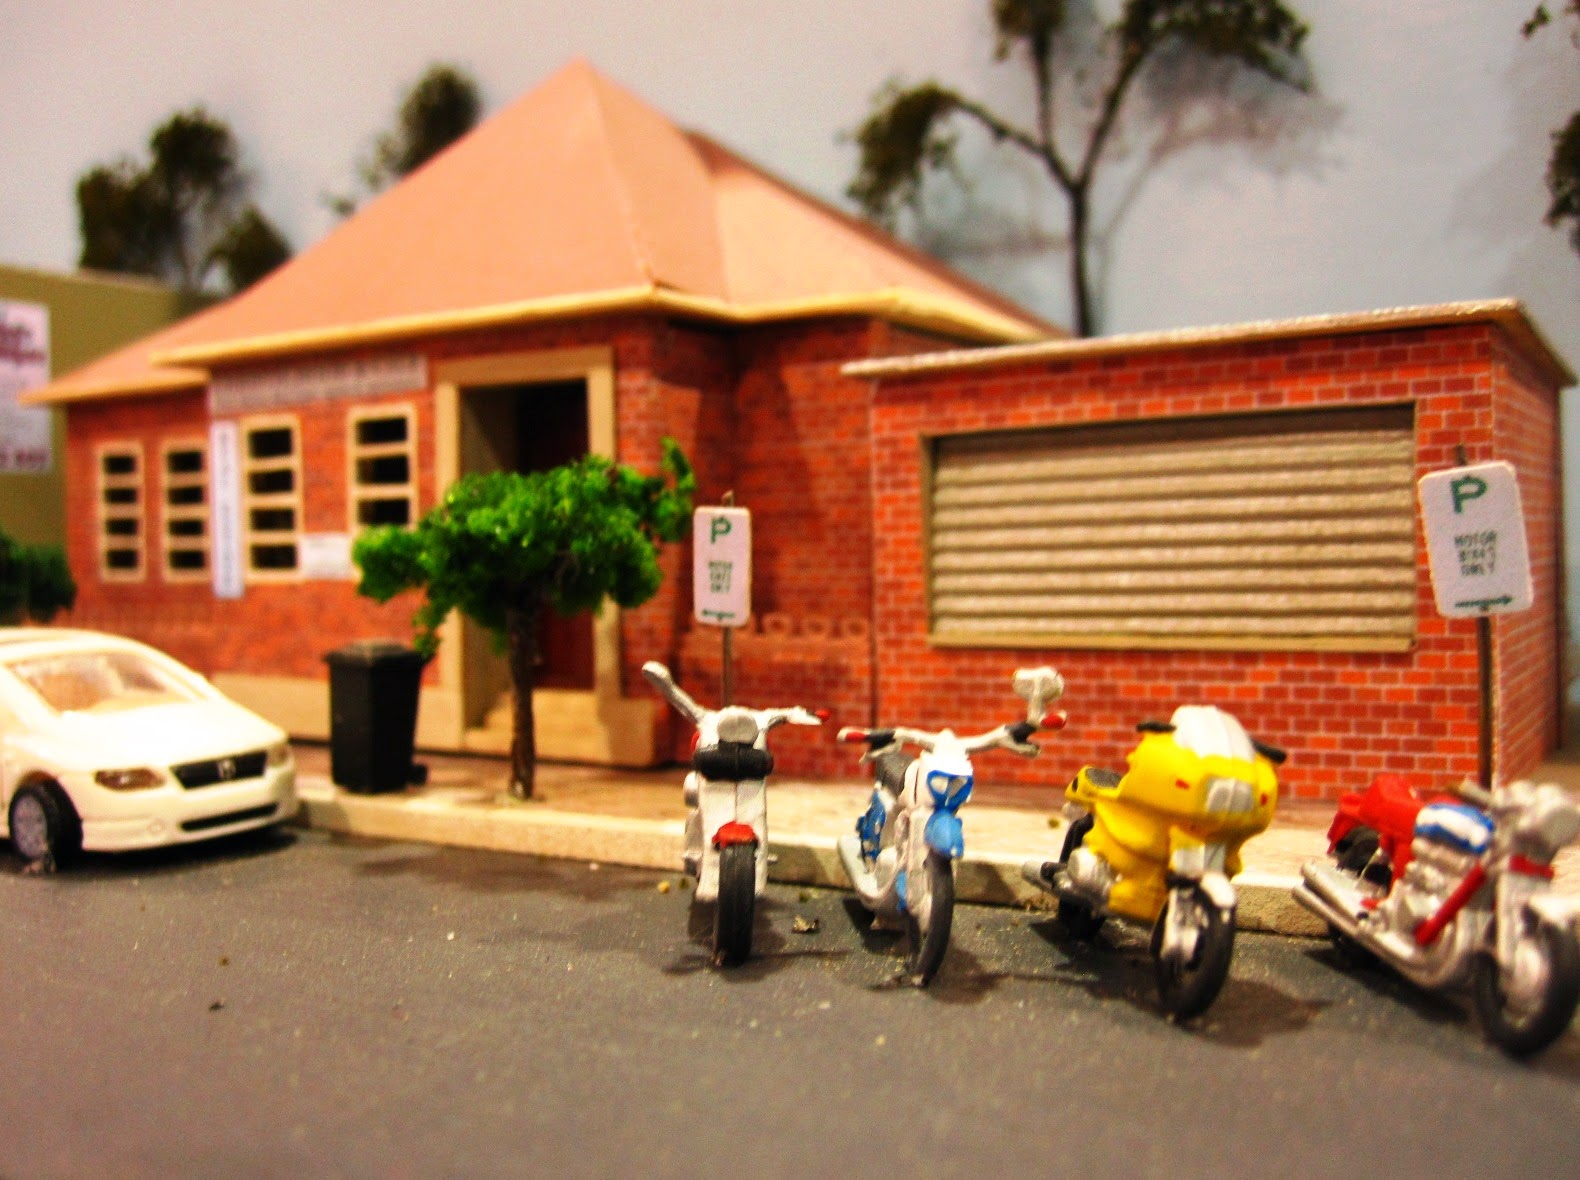 Quarter inch scale modern Australian town street scene with council building and motorcycles parked outside.